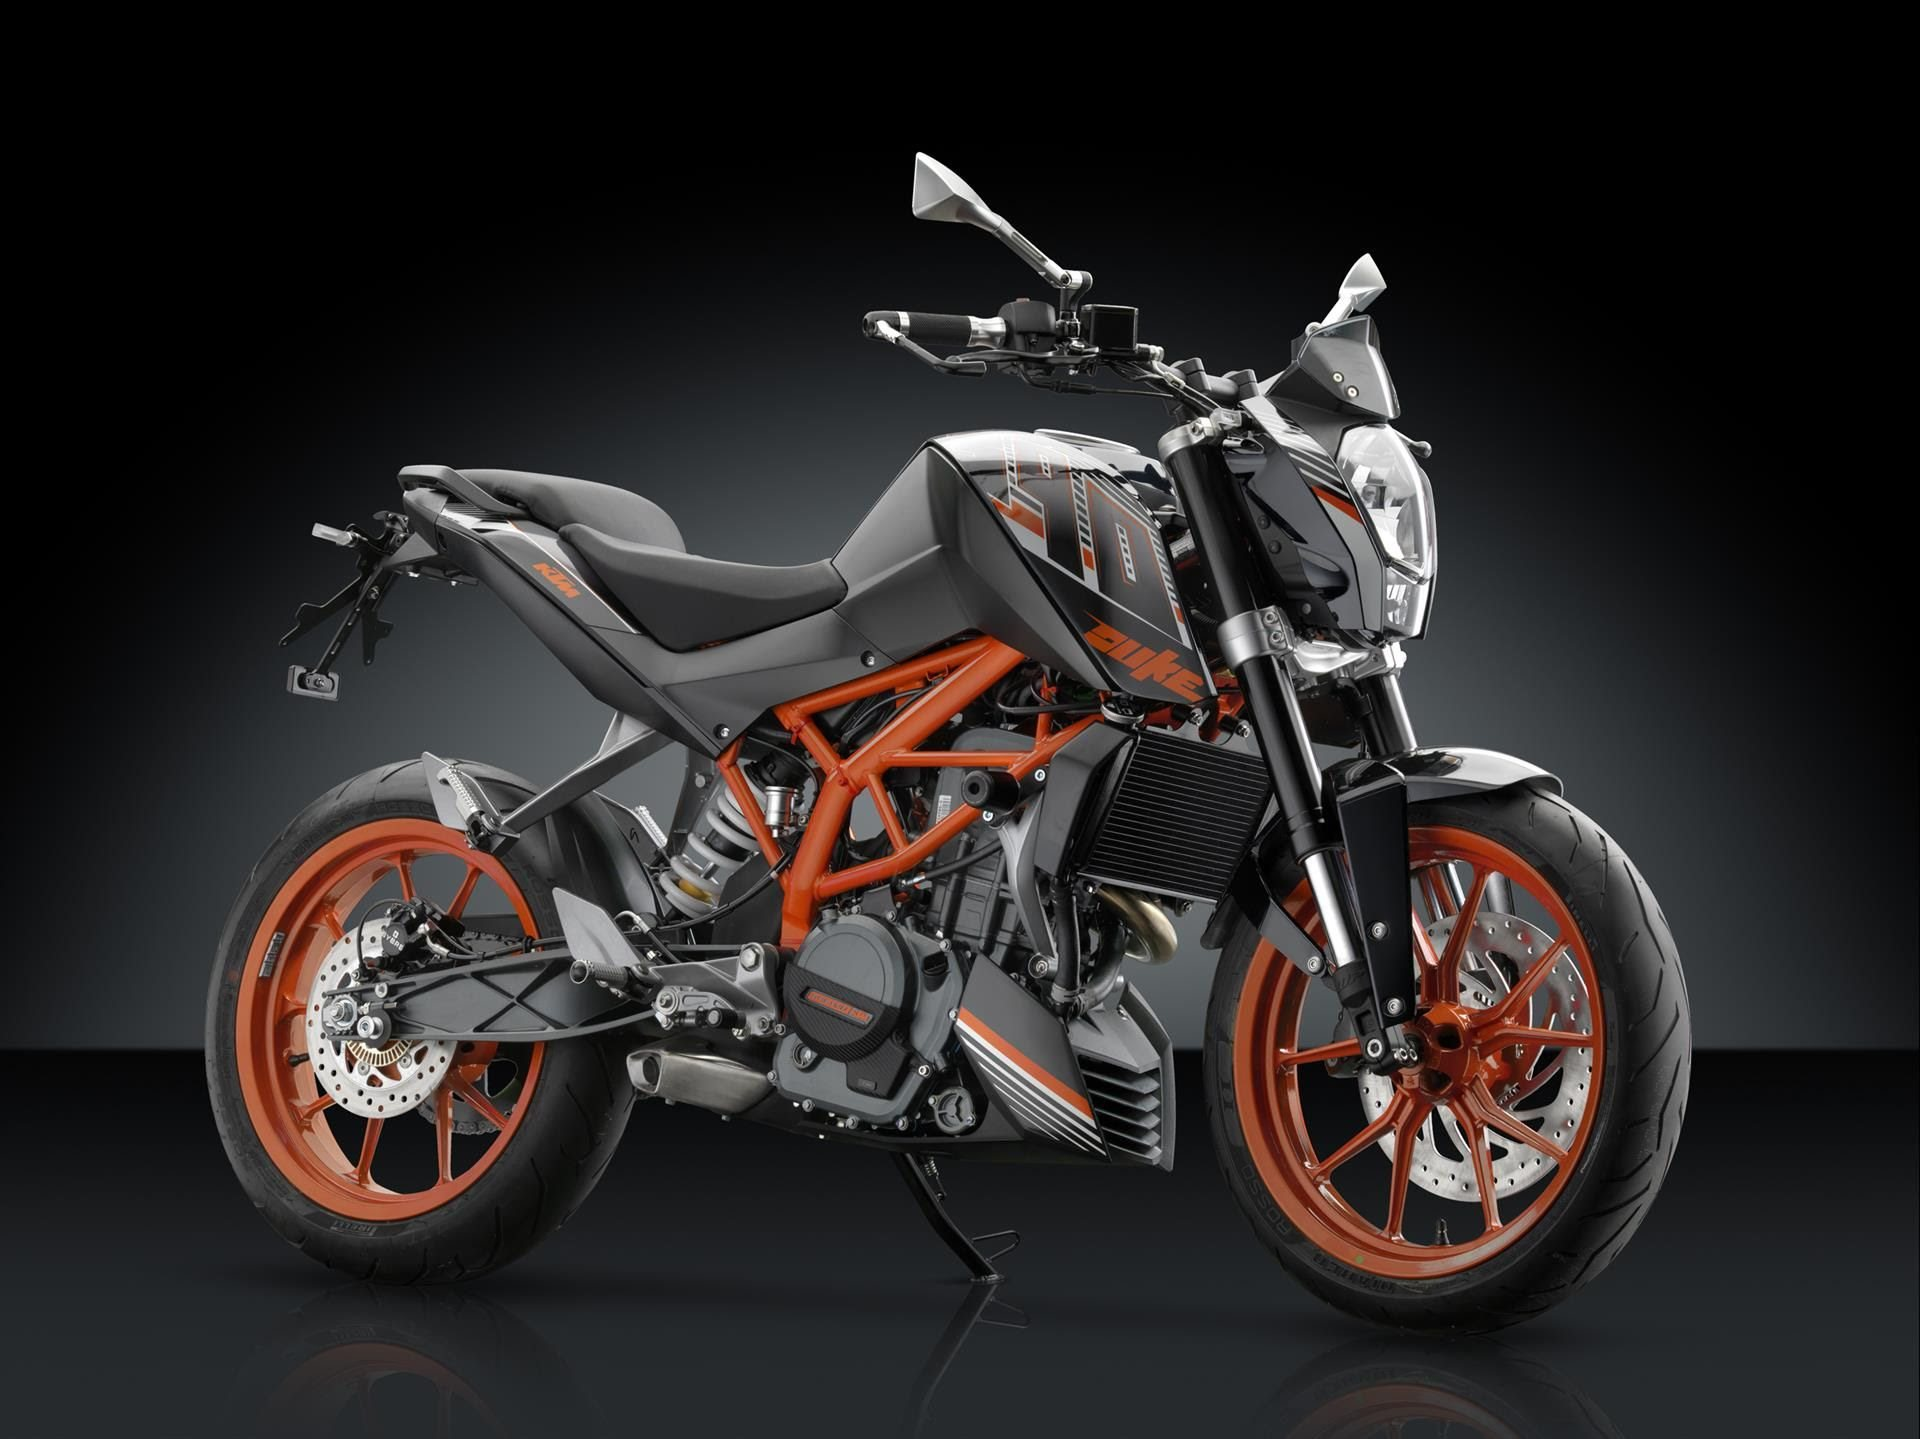 rizoma zubeh r f r ktm 125 und 390 duke motorrad news. Black Bedroom Furniture Sets. Home Design Ideas